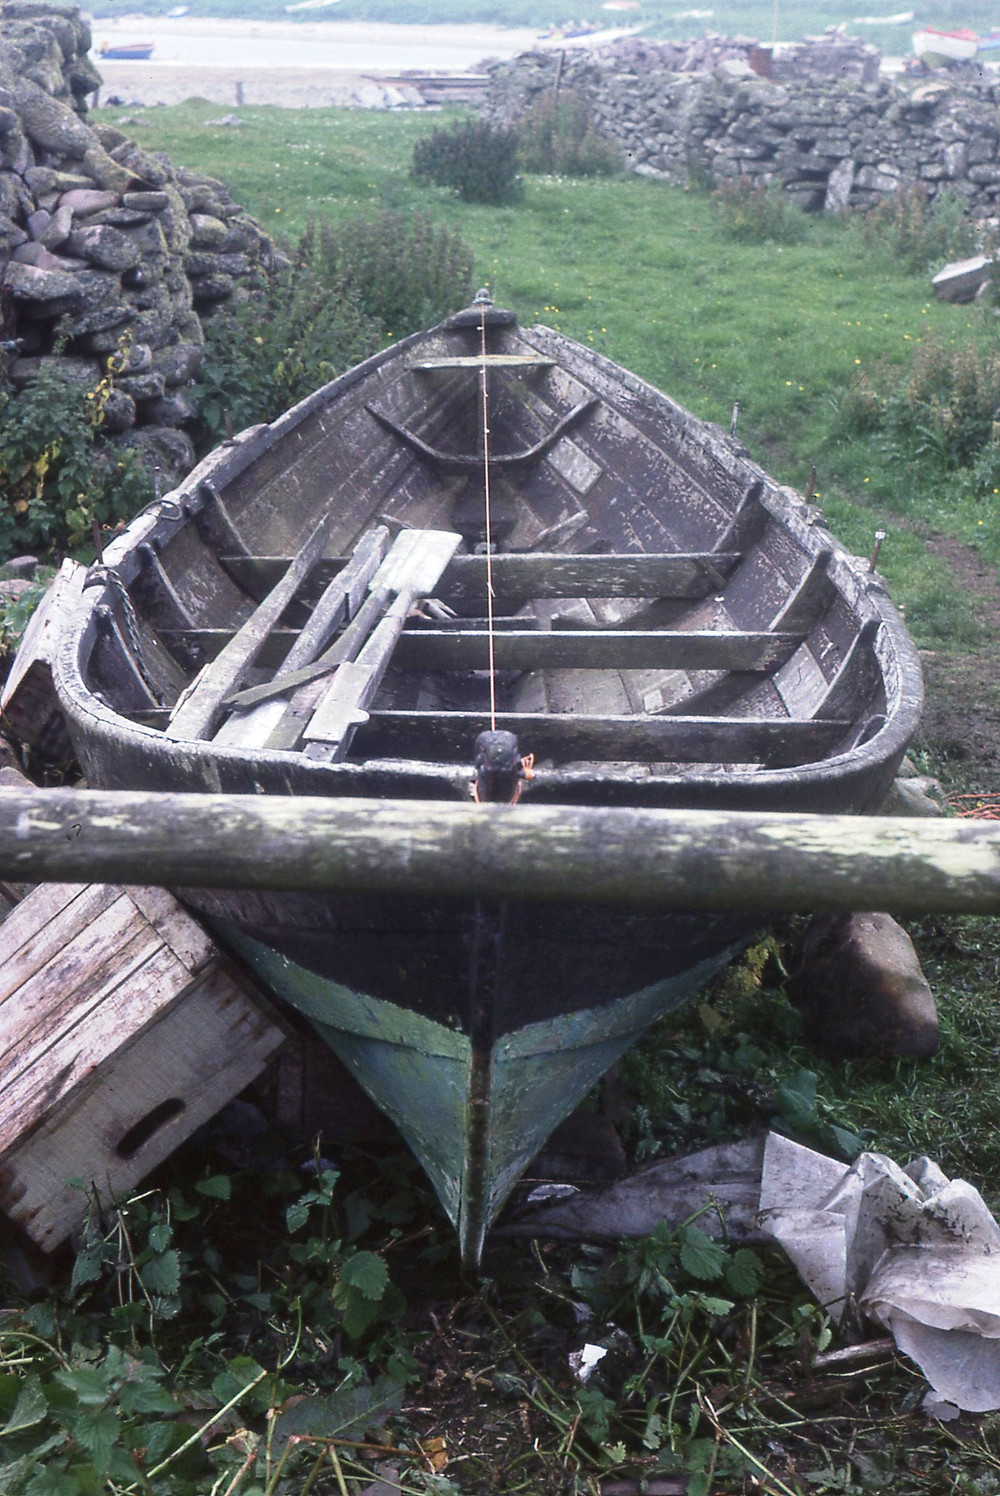 The laid-up Ivy LK237 at Broch Head, 1979